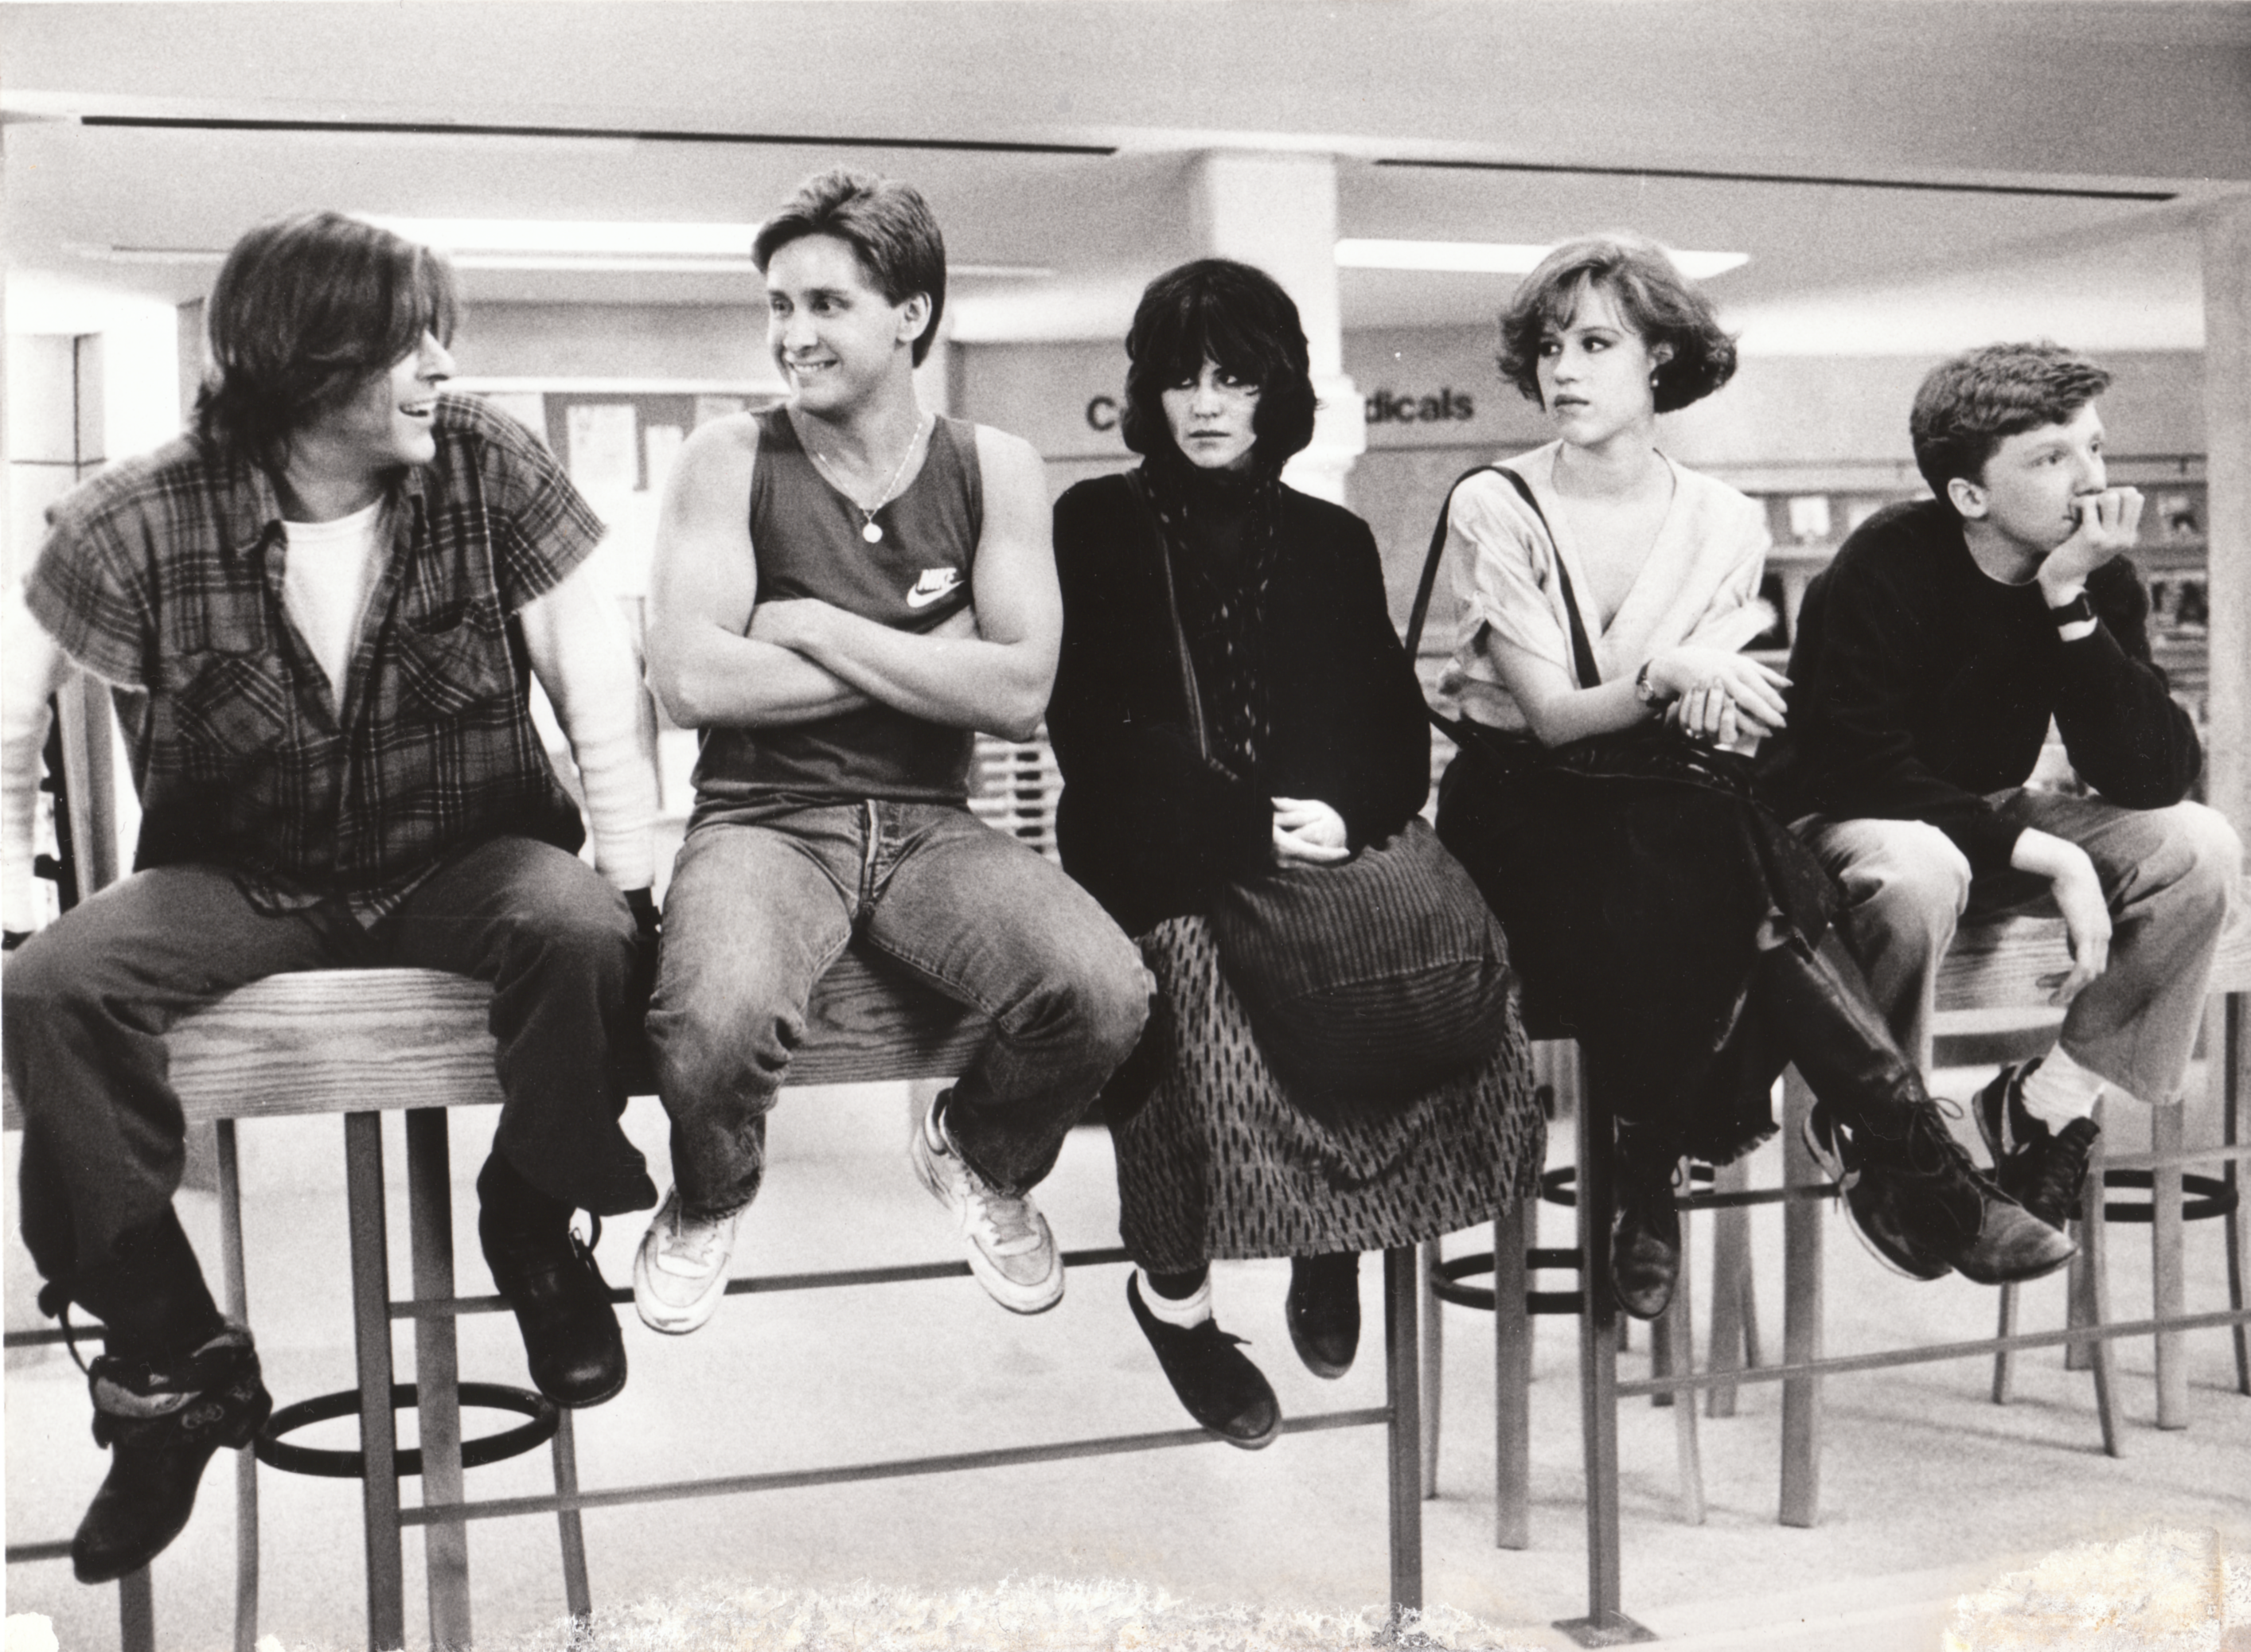 The-Breakfast-Club-Anthony-Michael-Hall-Molly-Ringwald-Judd-Nelson-Emilio-Estevez-Ally-Sheedy-_298556-55